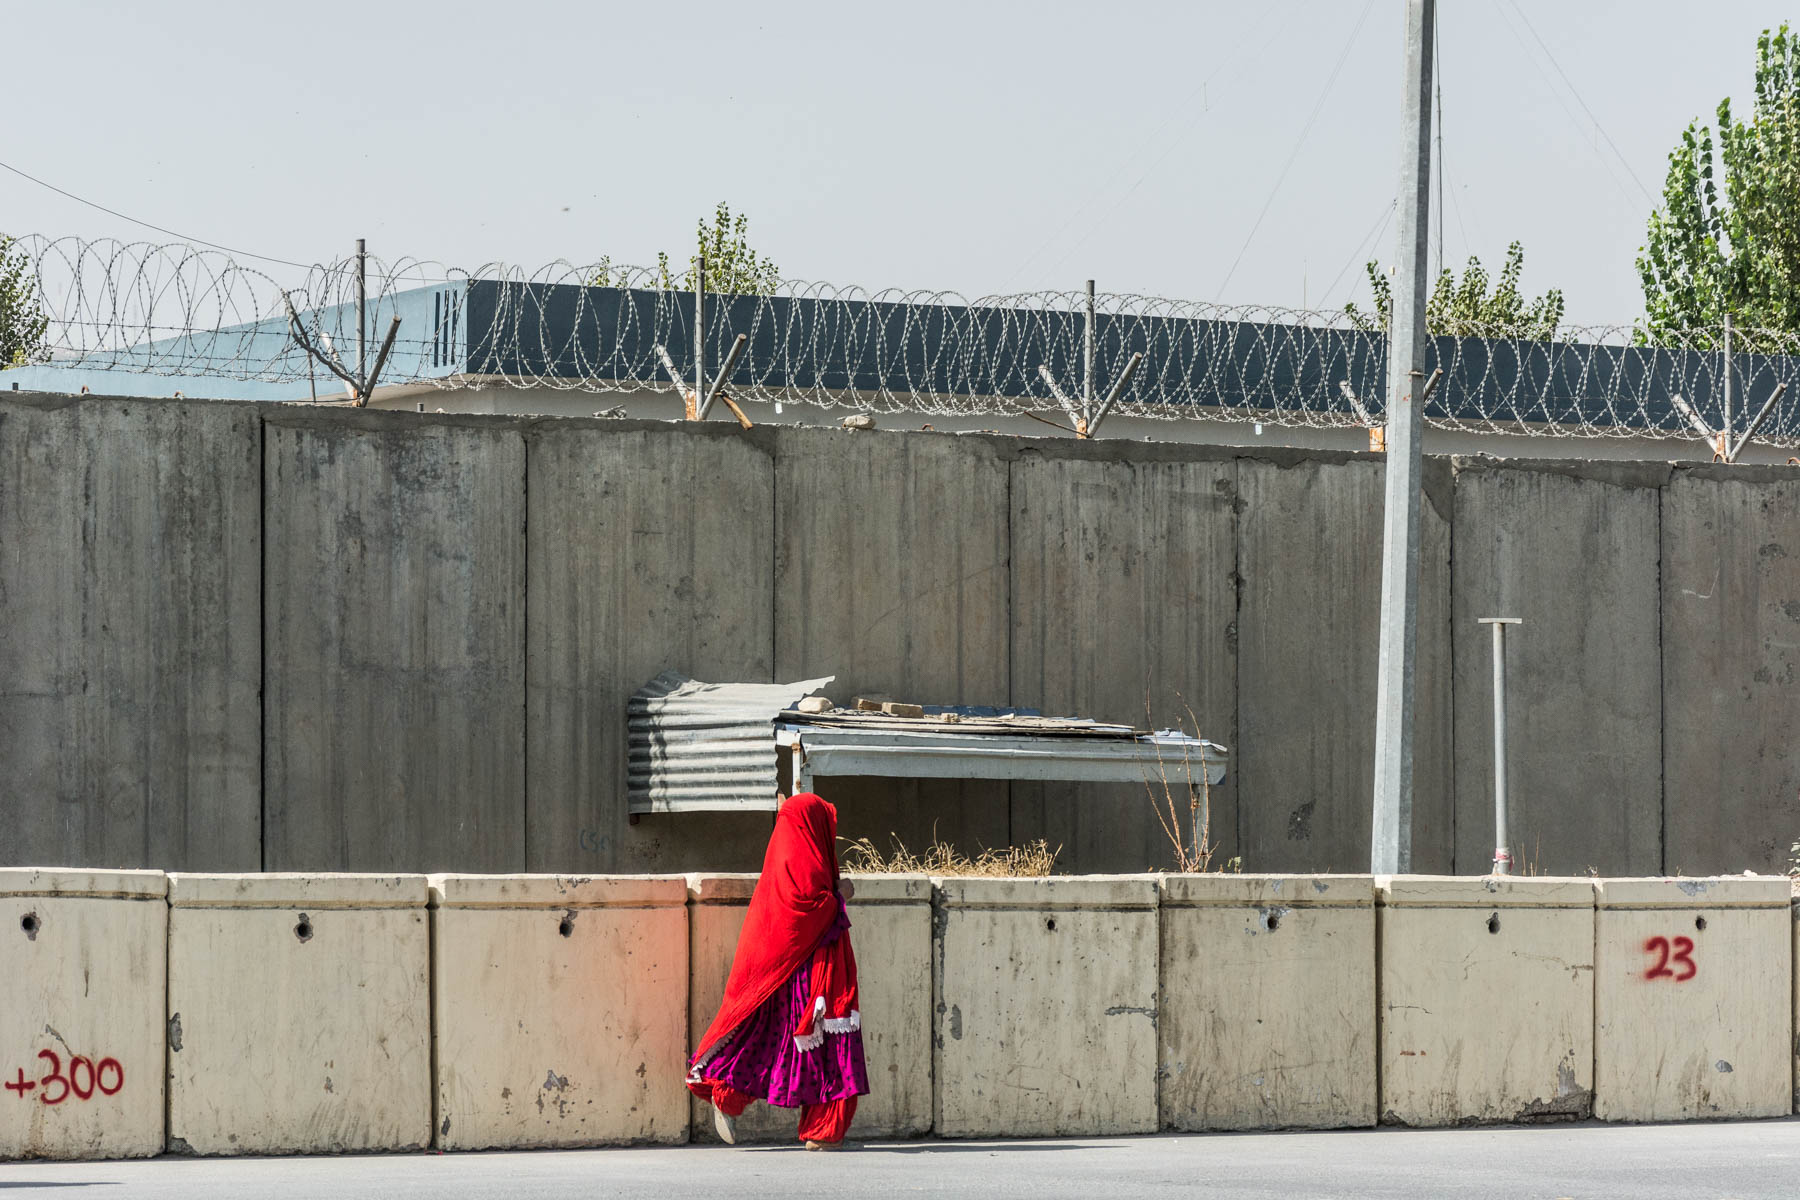 A girl walking in front of barbed wire and a concrete wall in Kabul, Afghanistan